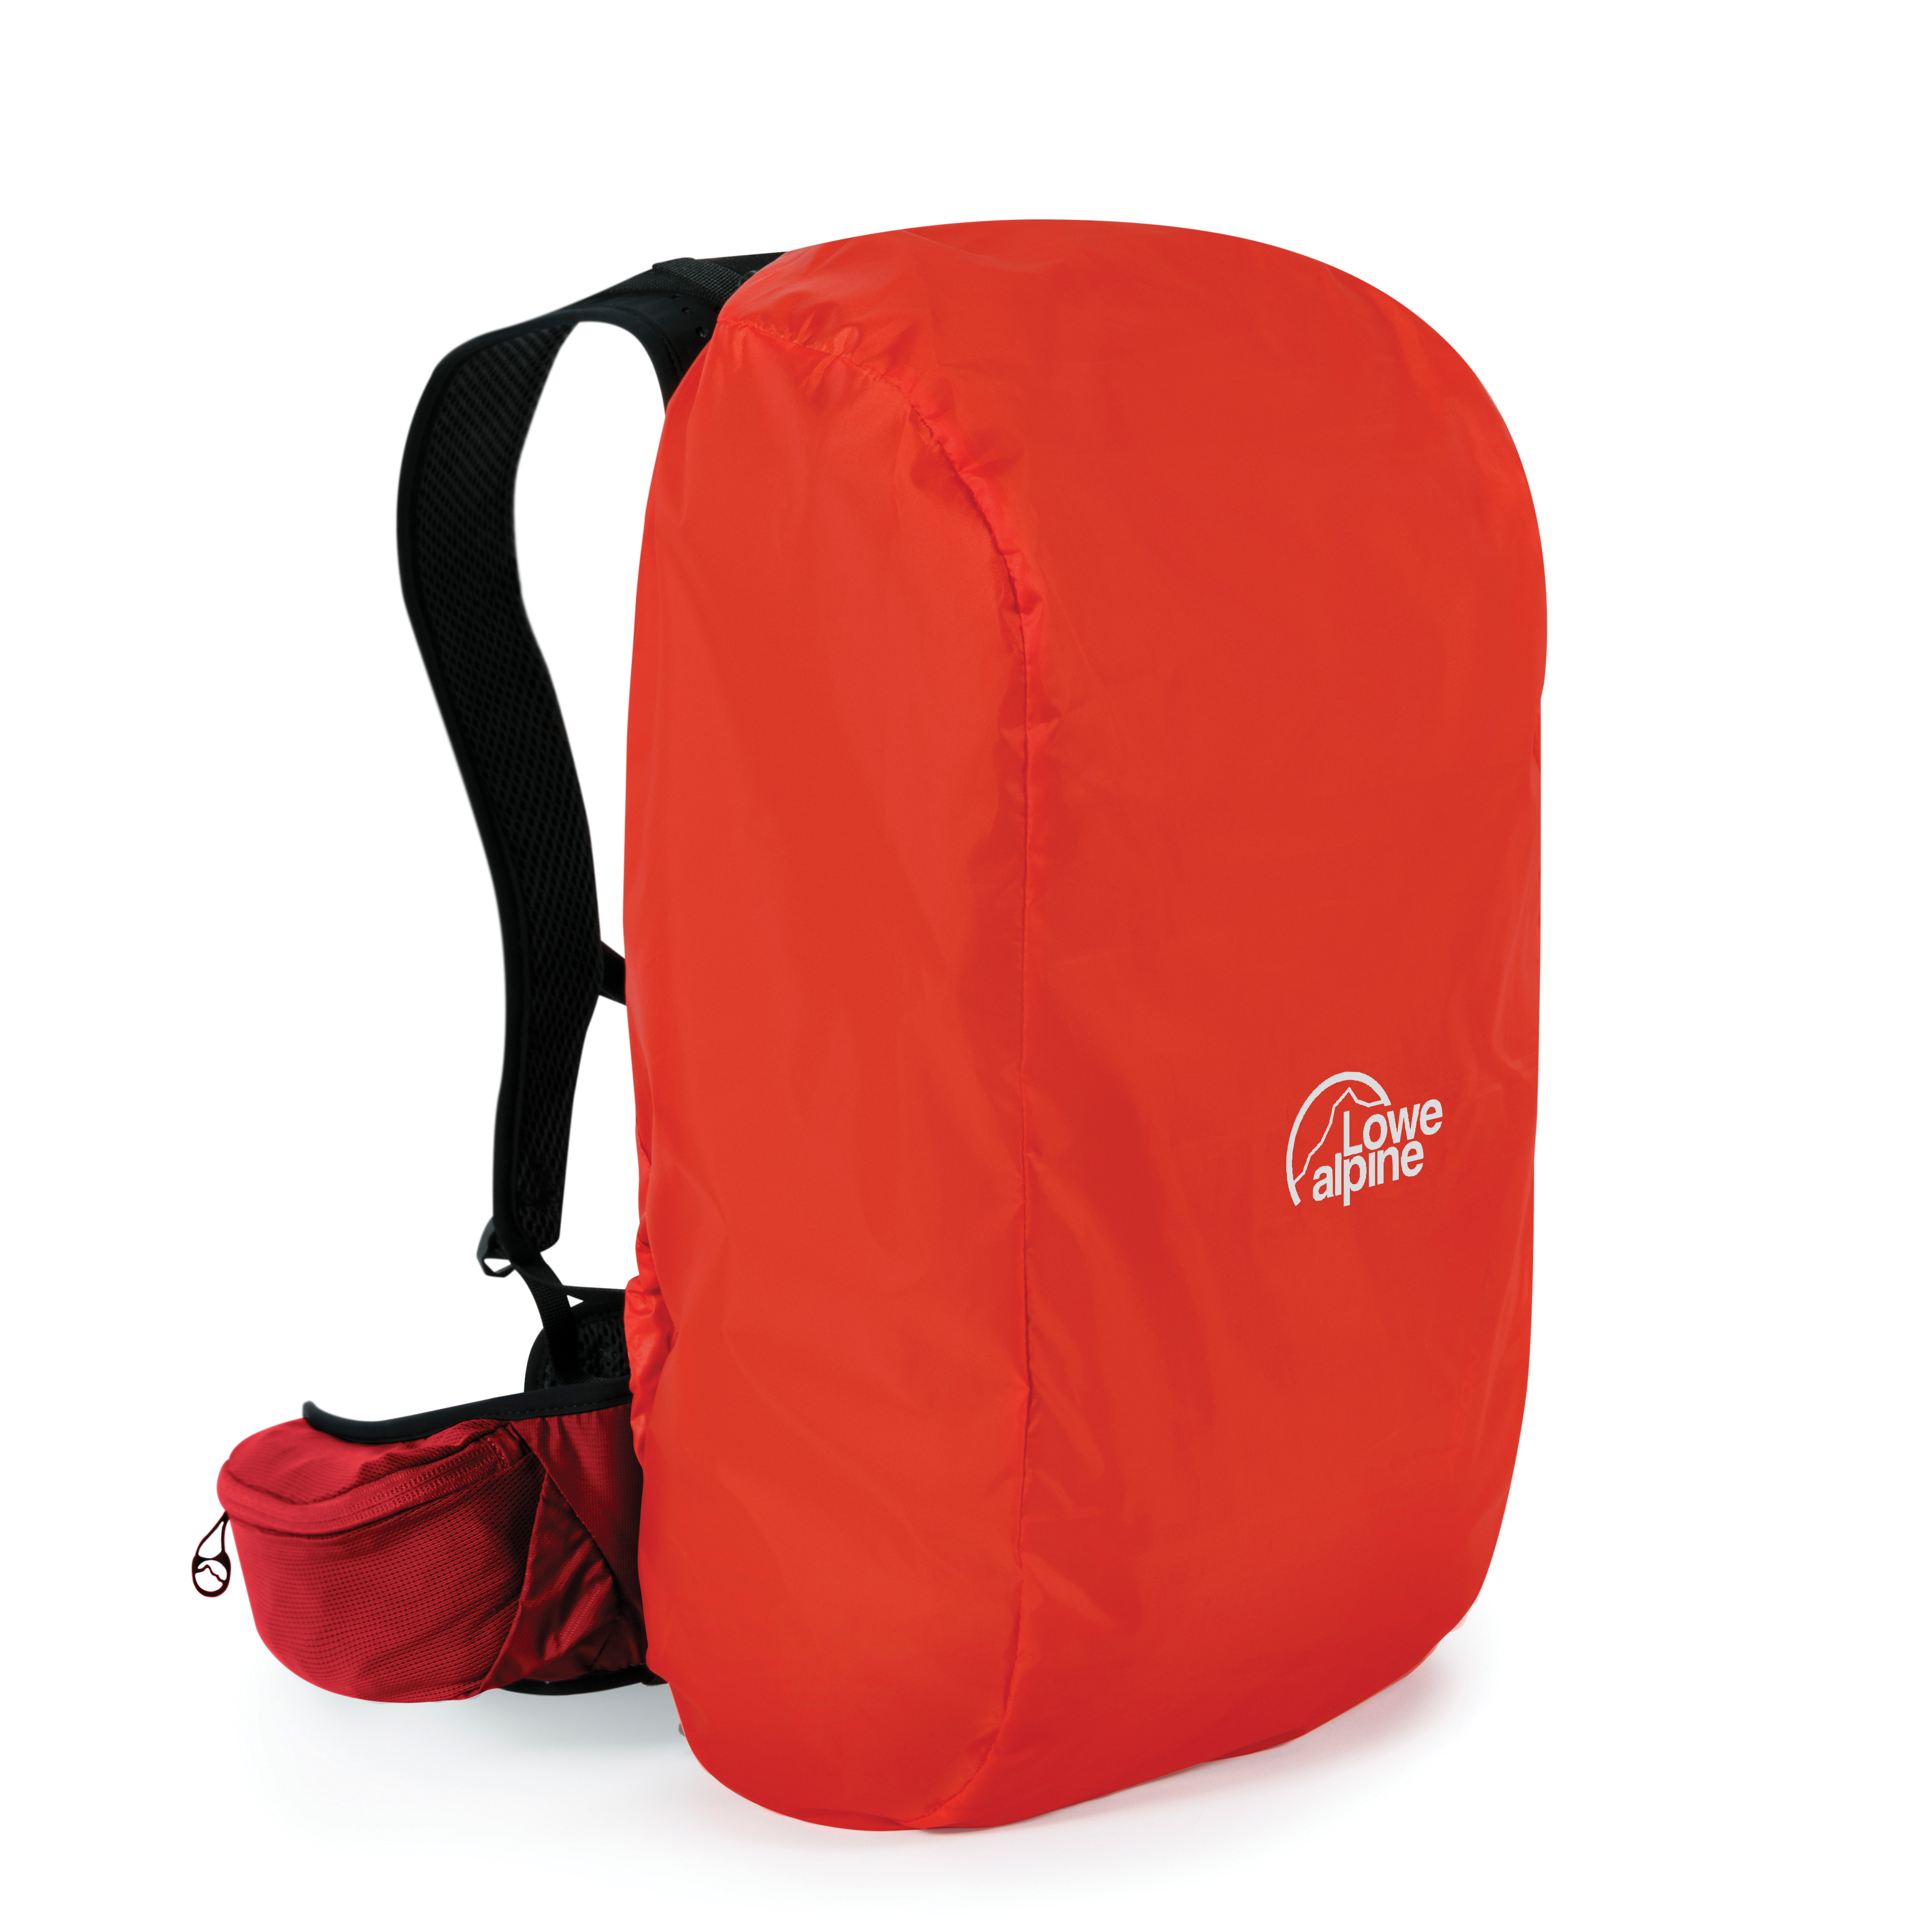 9062d83955b Lowe Alpine | Aeon | Raincover | Hot Orange | Large £6.00